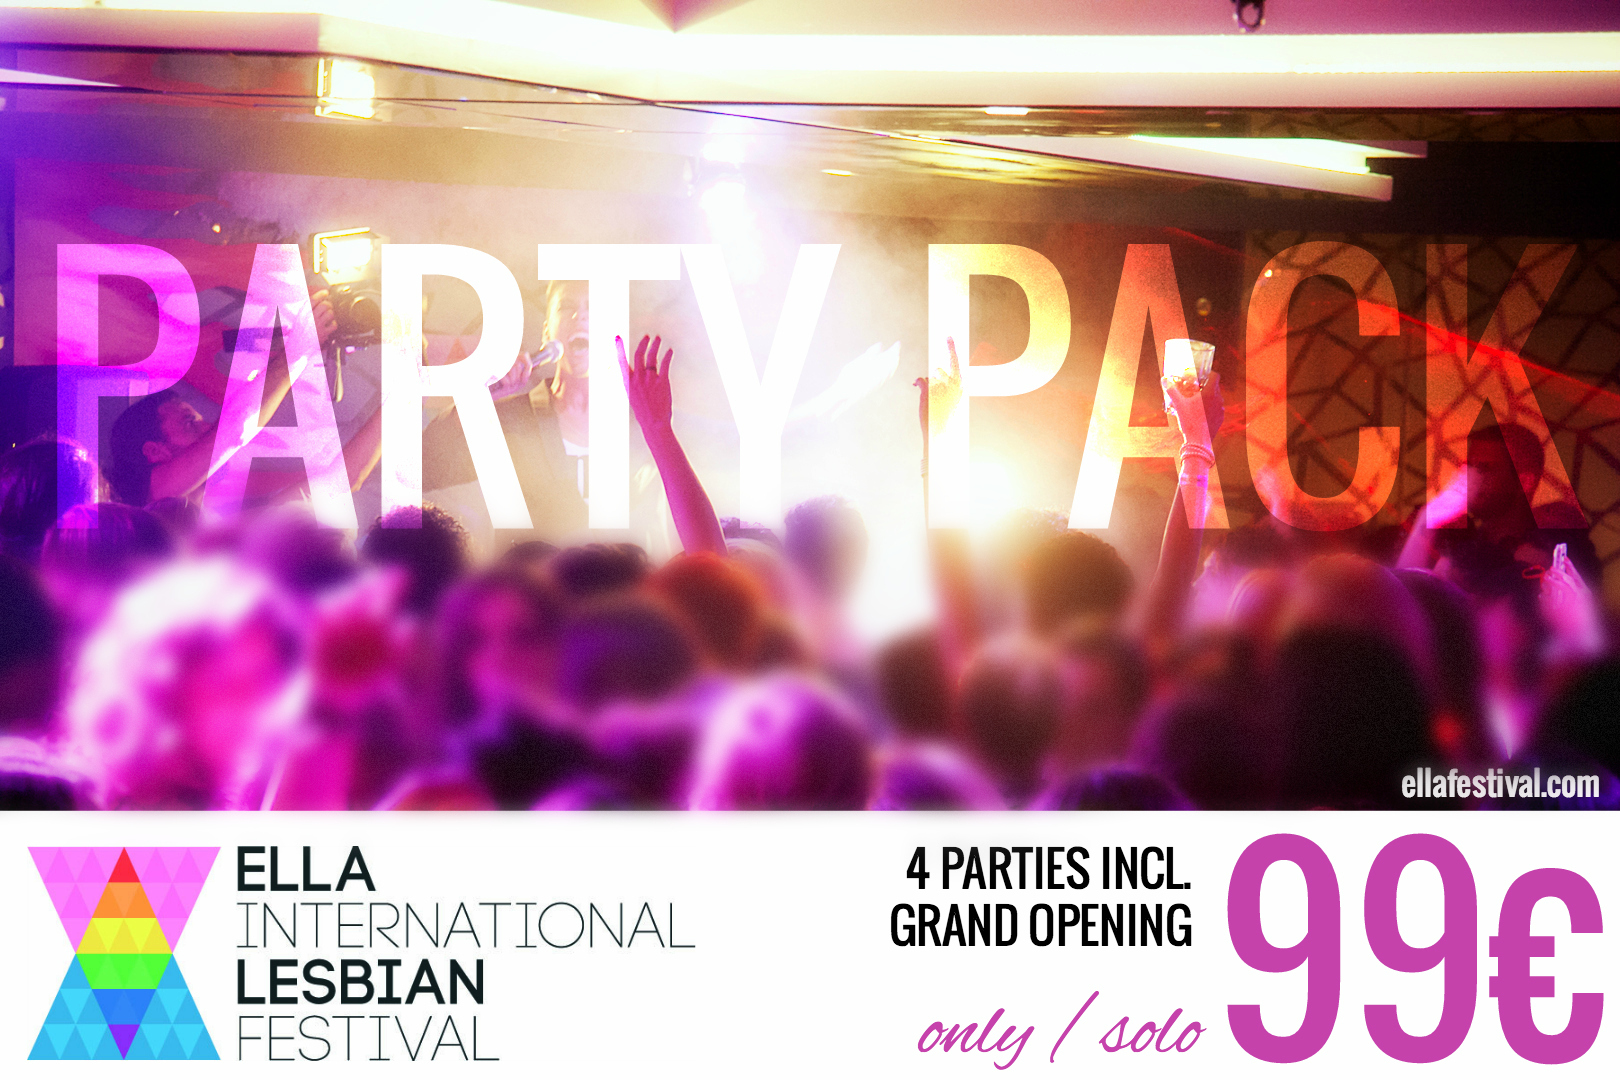 ELLA PROMO PARTY PACK VERSION 2